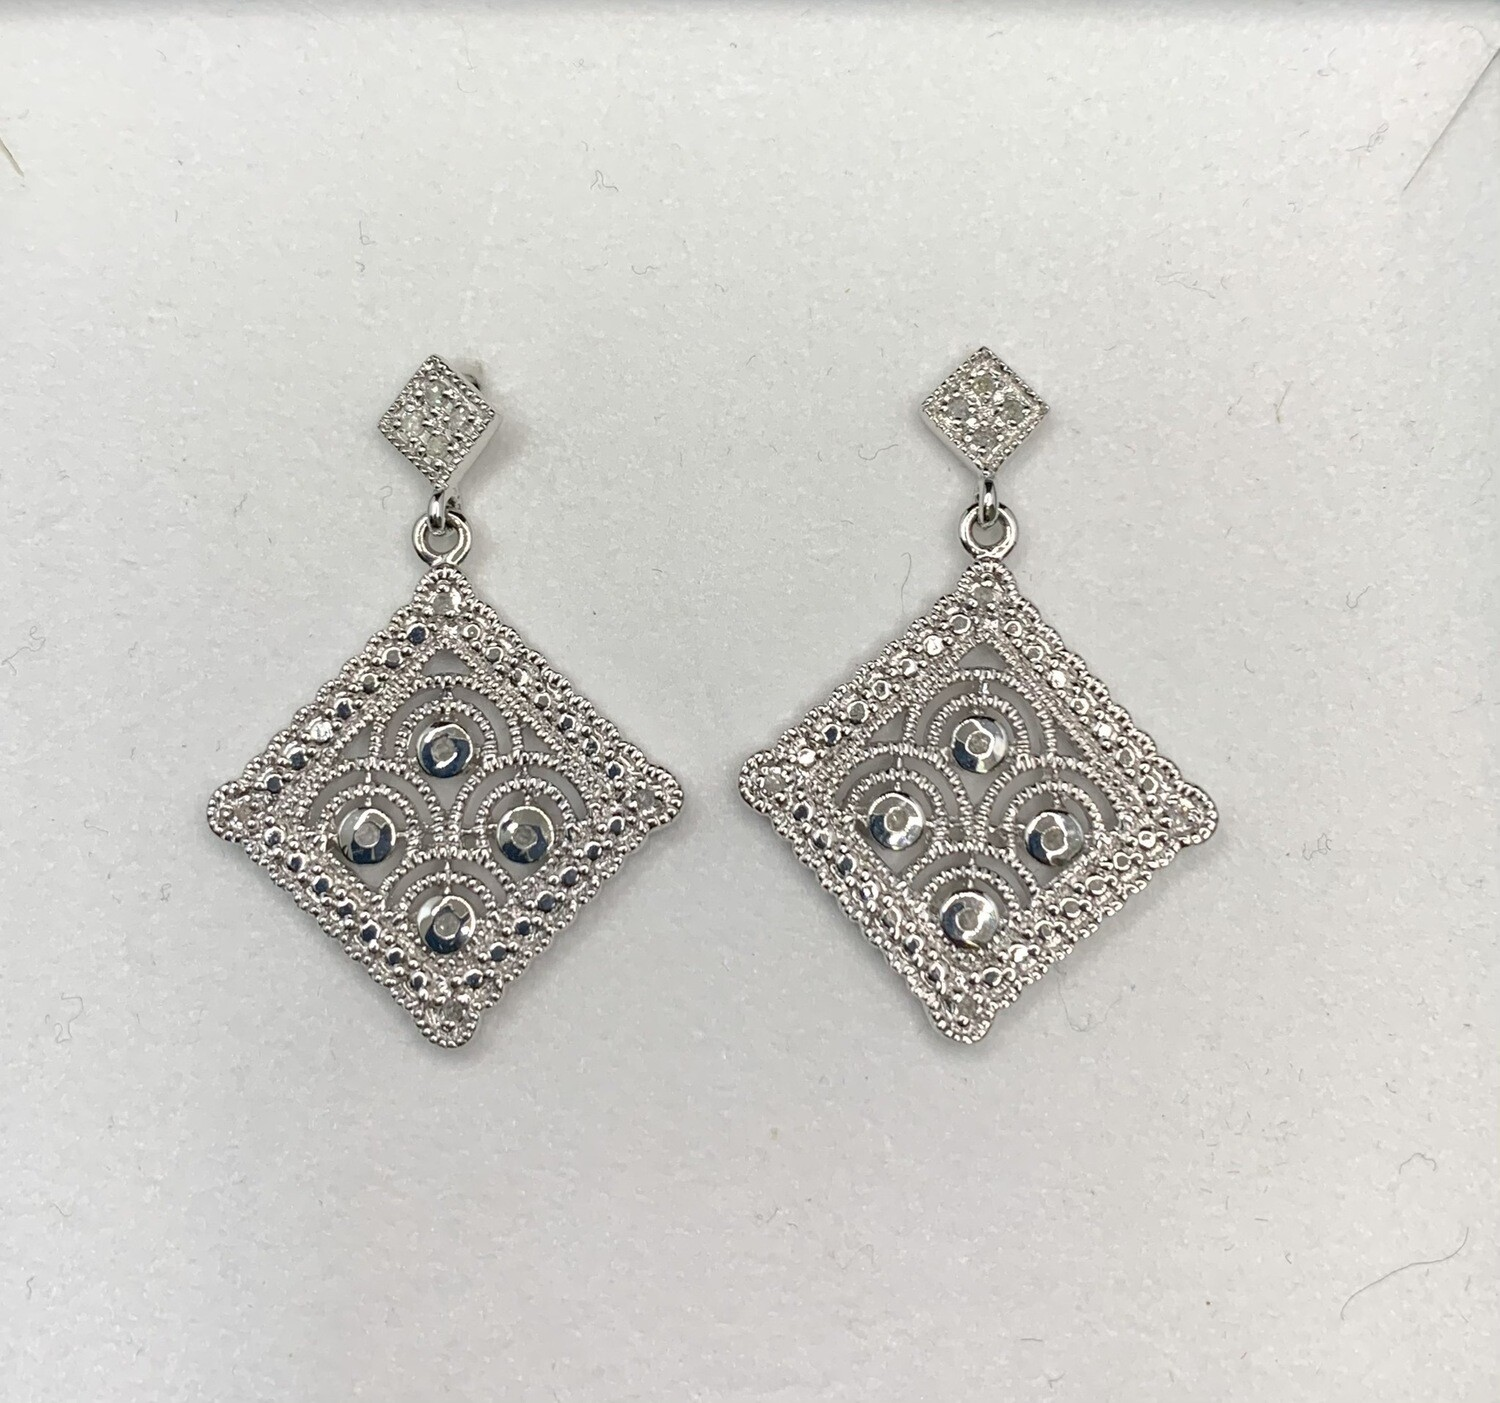 Square Filigree Sterling Silver With Diamond Accents Hanging Post Earrings